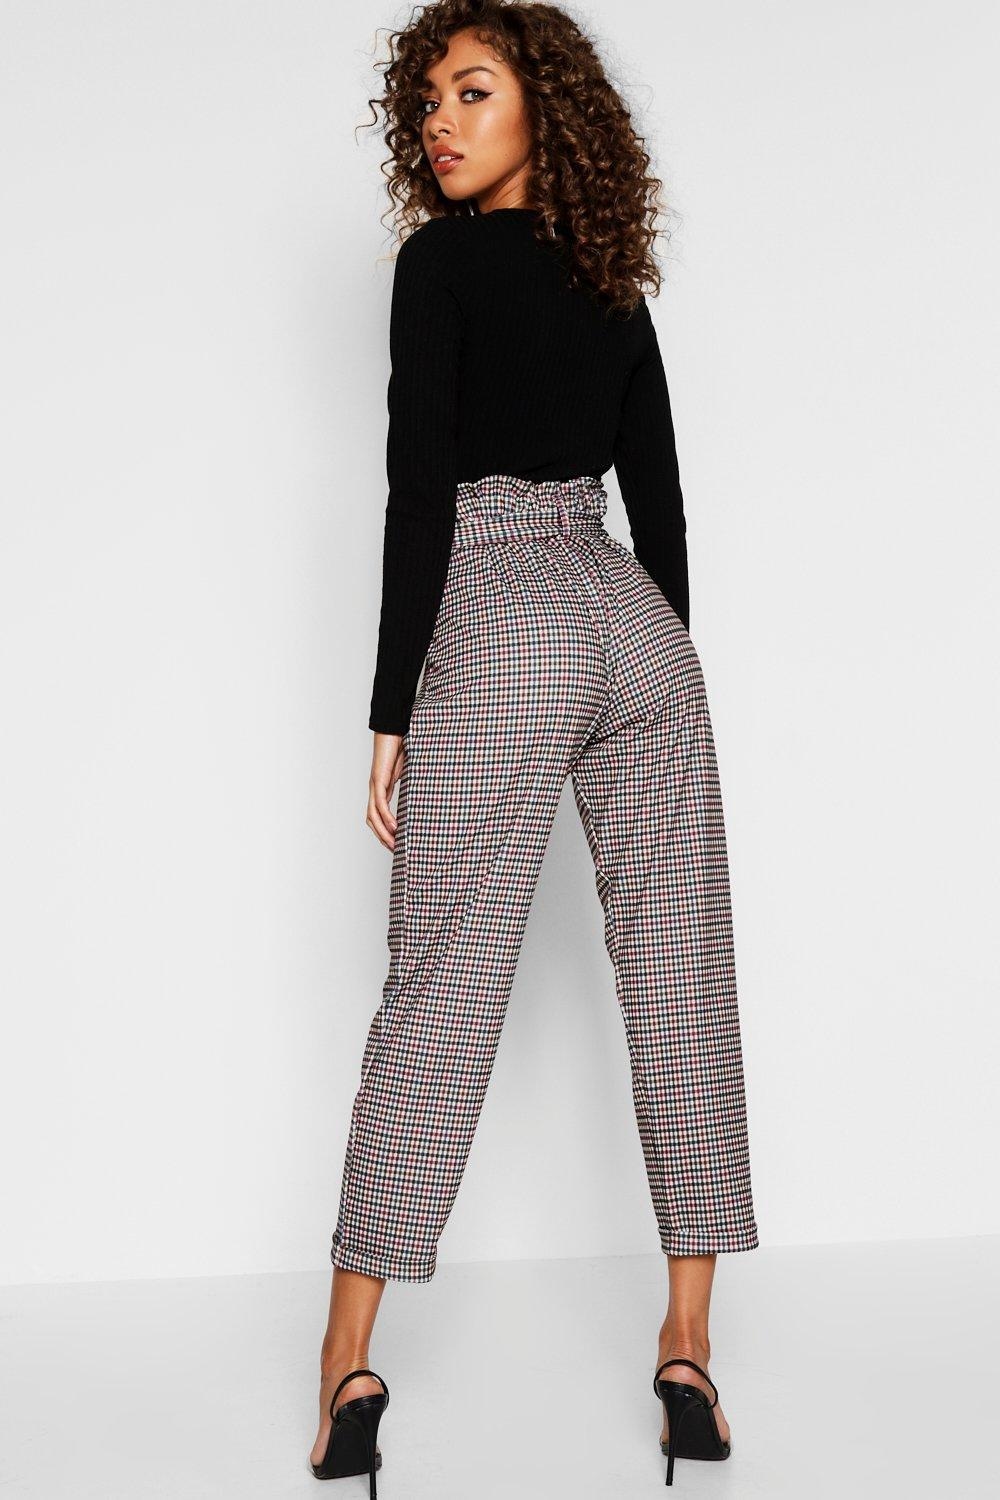 eefdd81d69ba5 Boohoo - Multicolor Heritage Check Belted Tapered Trouser - Lyst. View  fullscreen